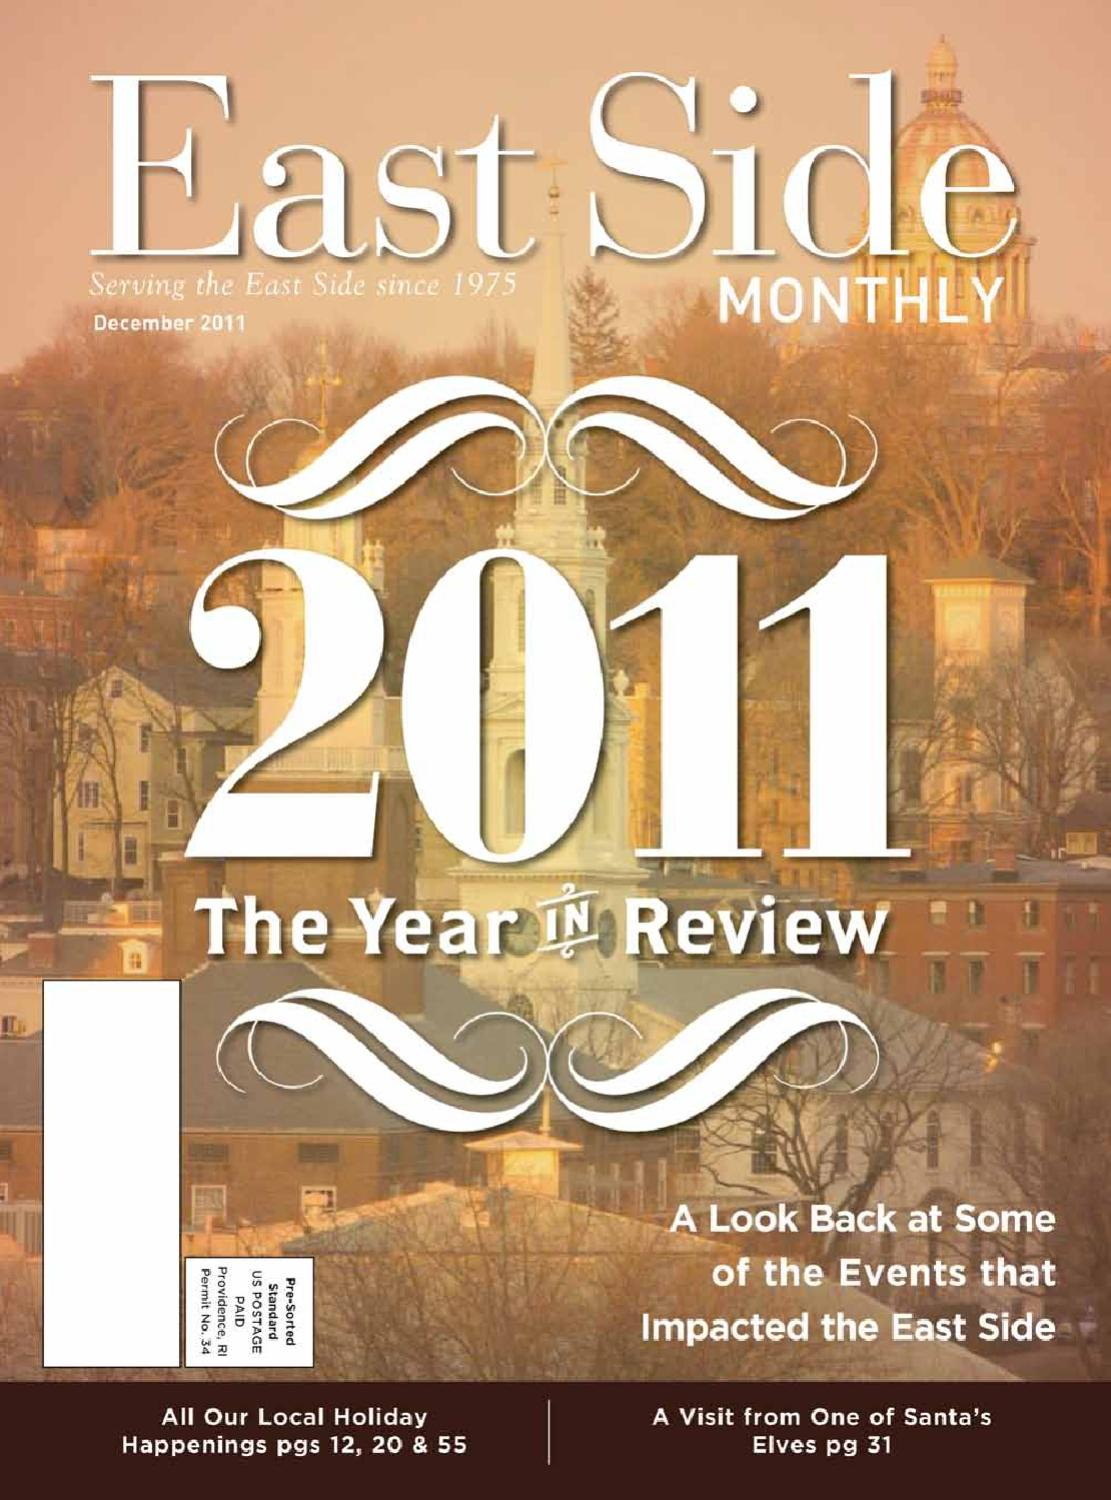 newnan coweta magazine nov dec 2005 by deberah williams issuu east side monthly 2011